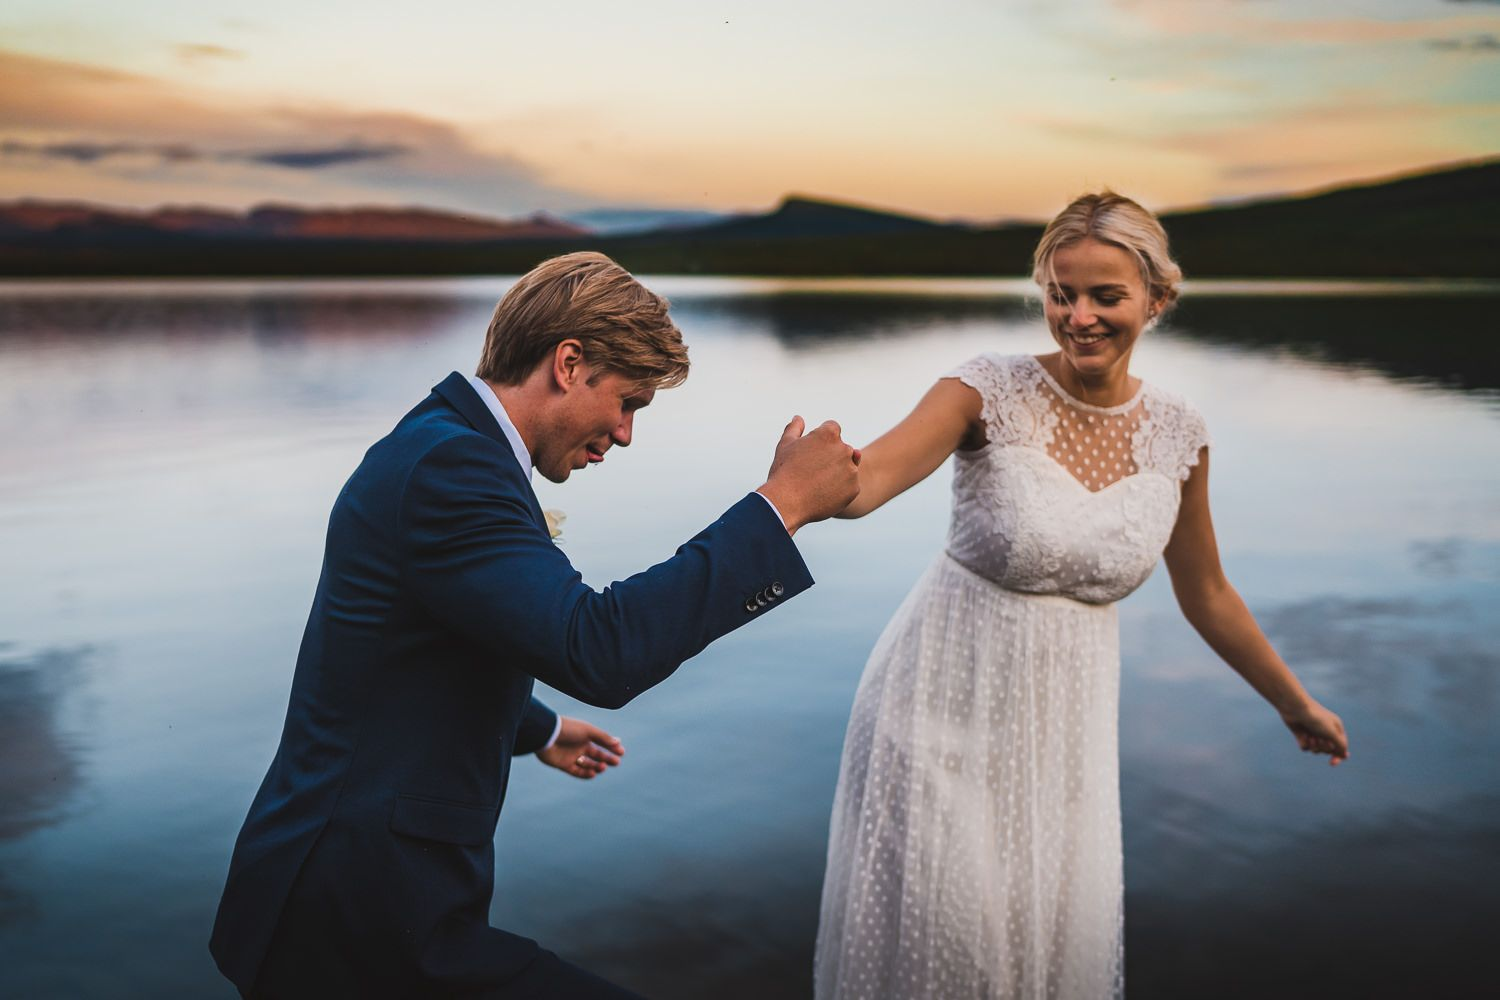 Photographer Maria Karlsson Swedish Adventure Elopement Couple and mountains in Norrland Bridal gown and flowers laughin